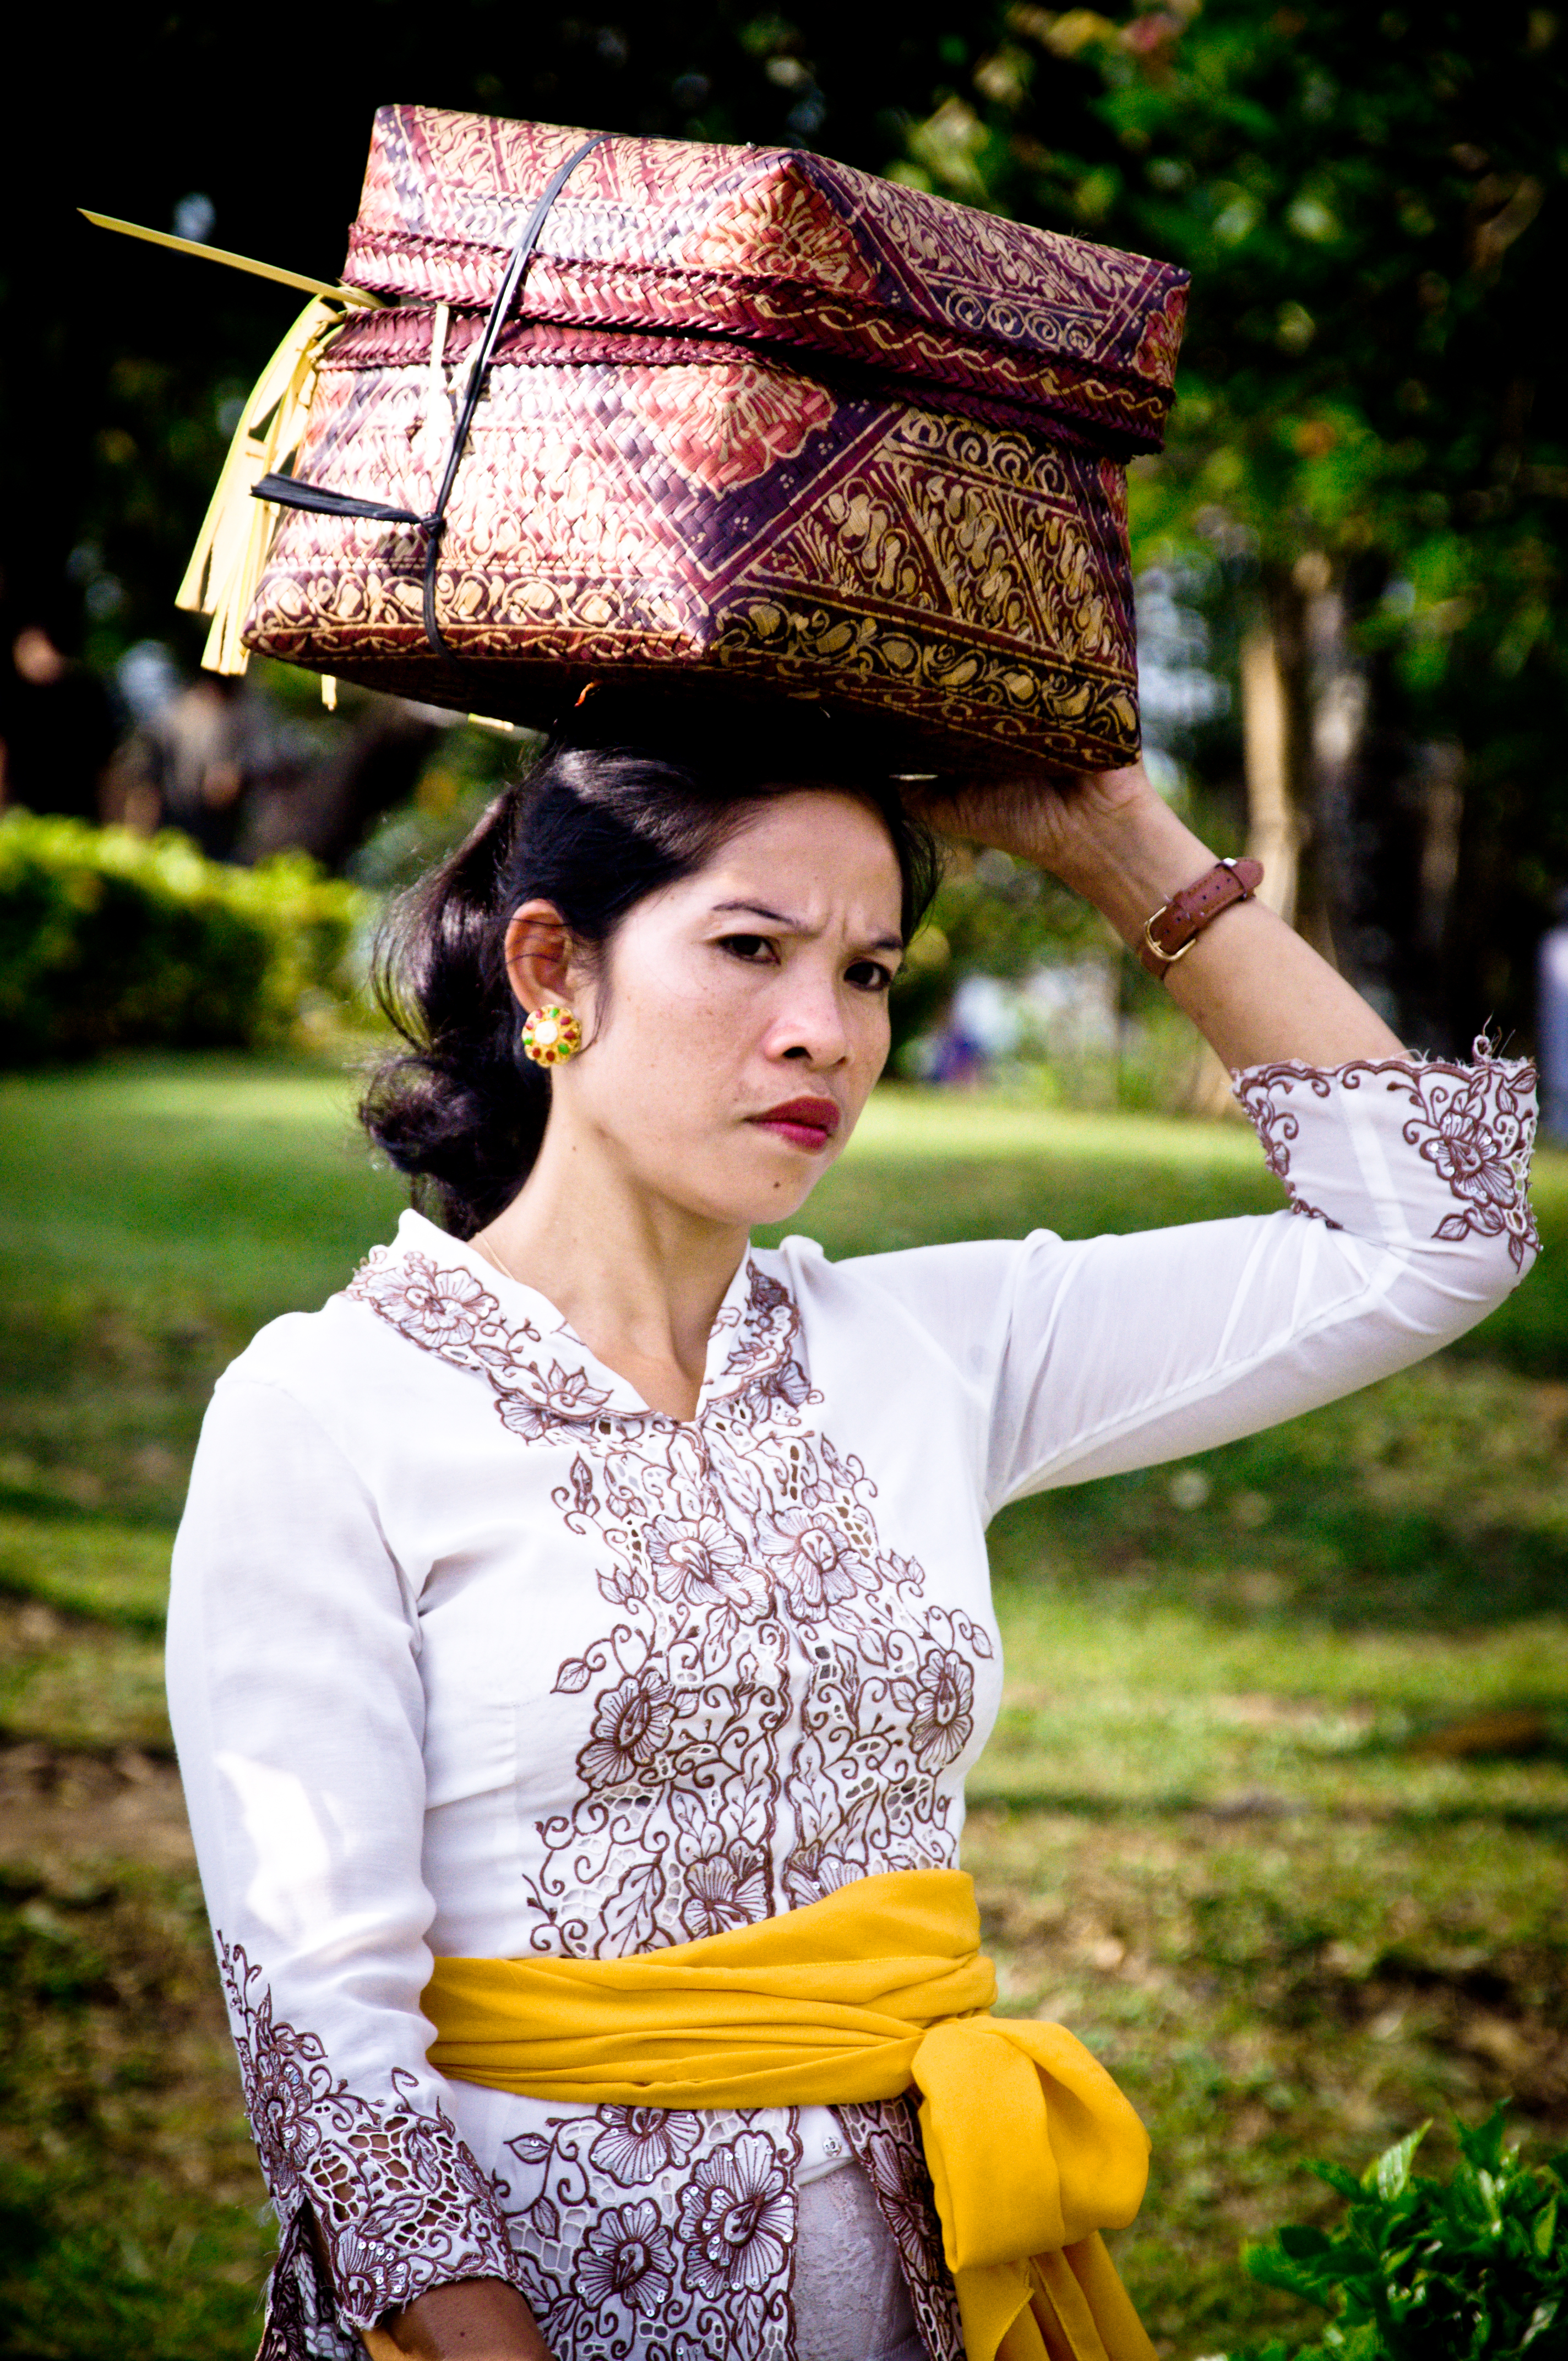 Woman with a basket on her head photo